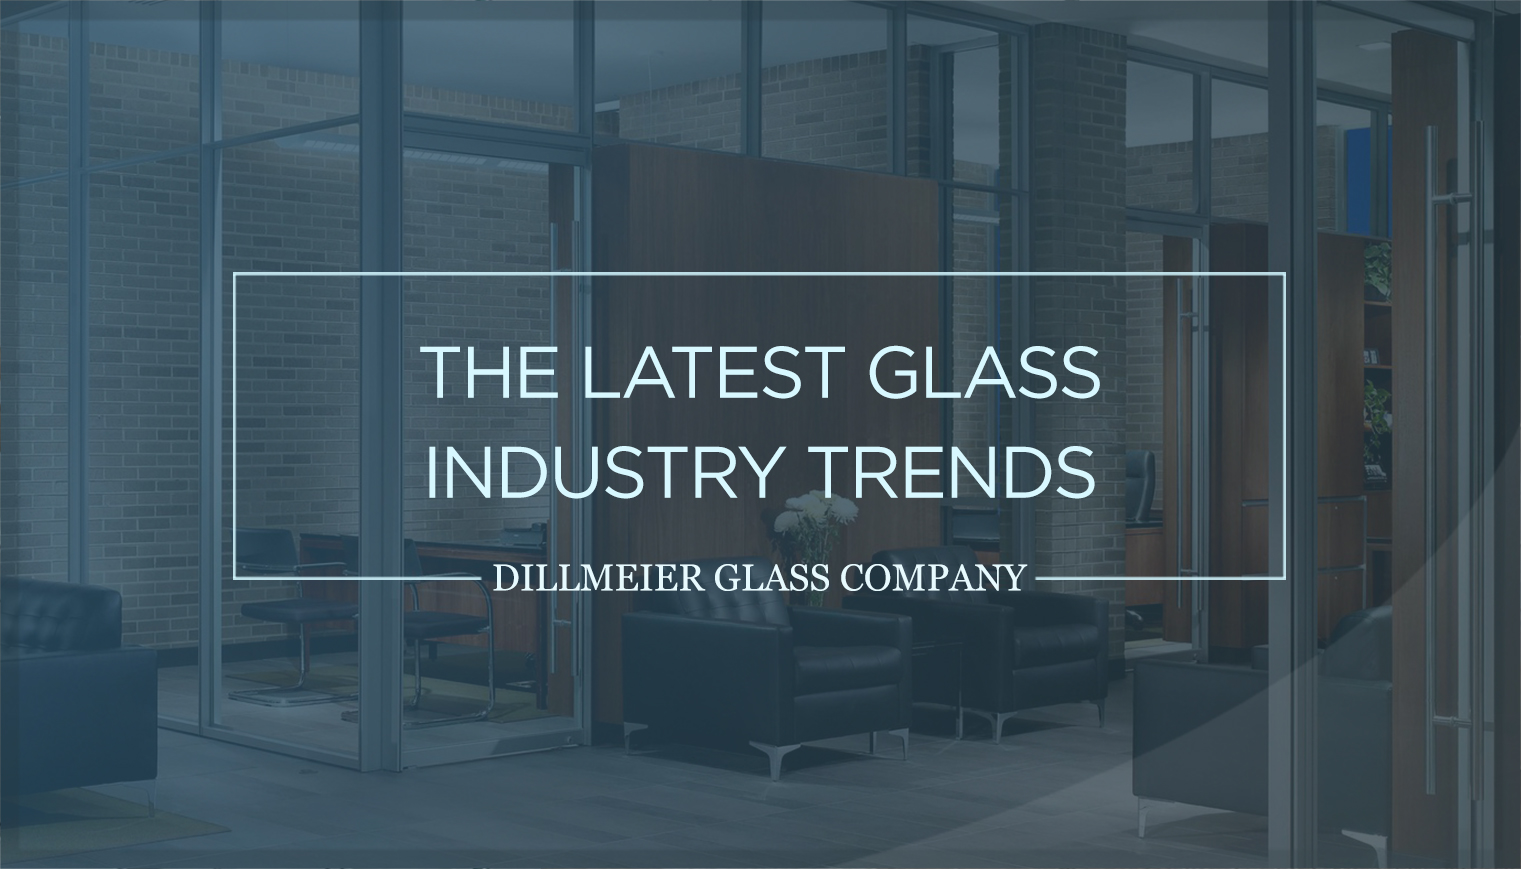 The Latest Glass Industry Trends